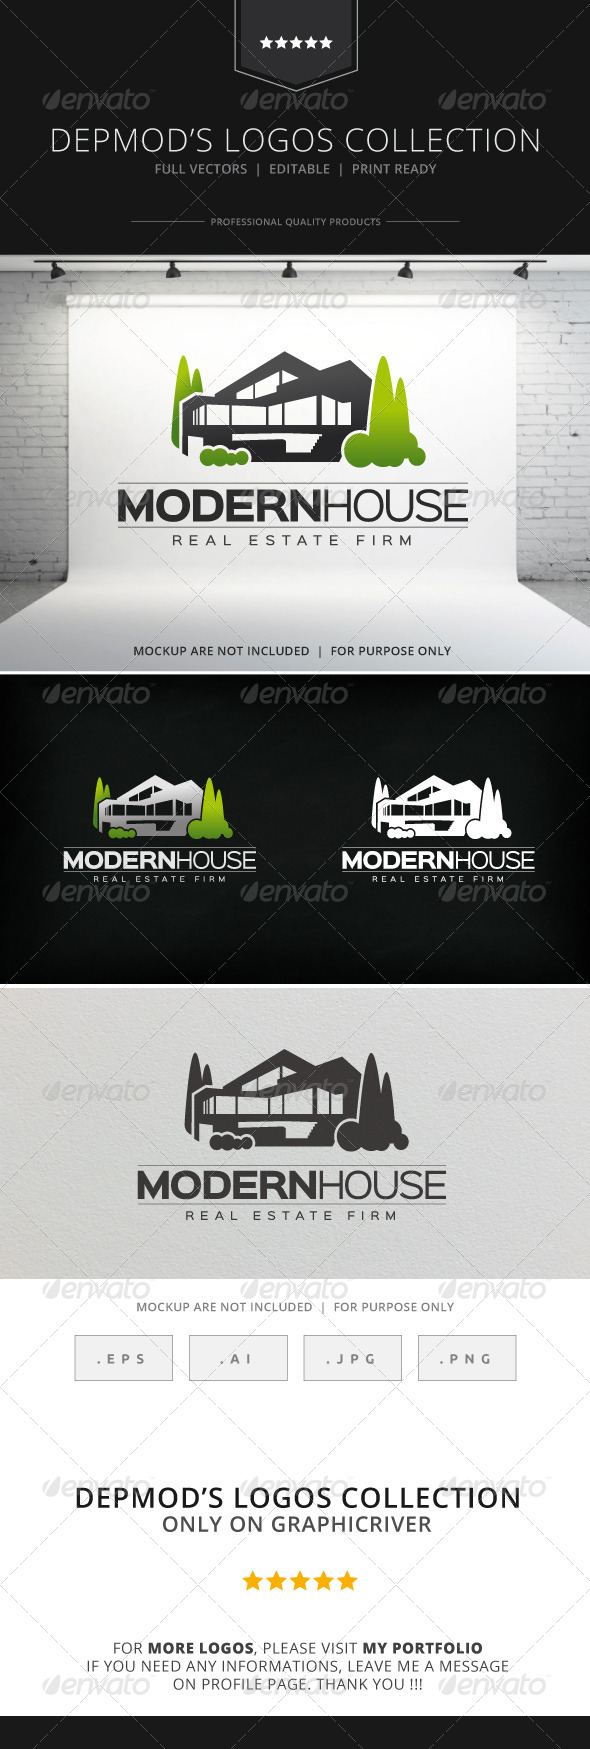 Modern house logo by opaq graphicriver for Modern house logo